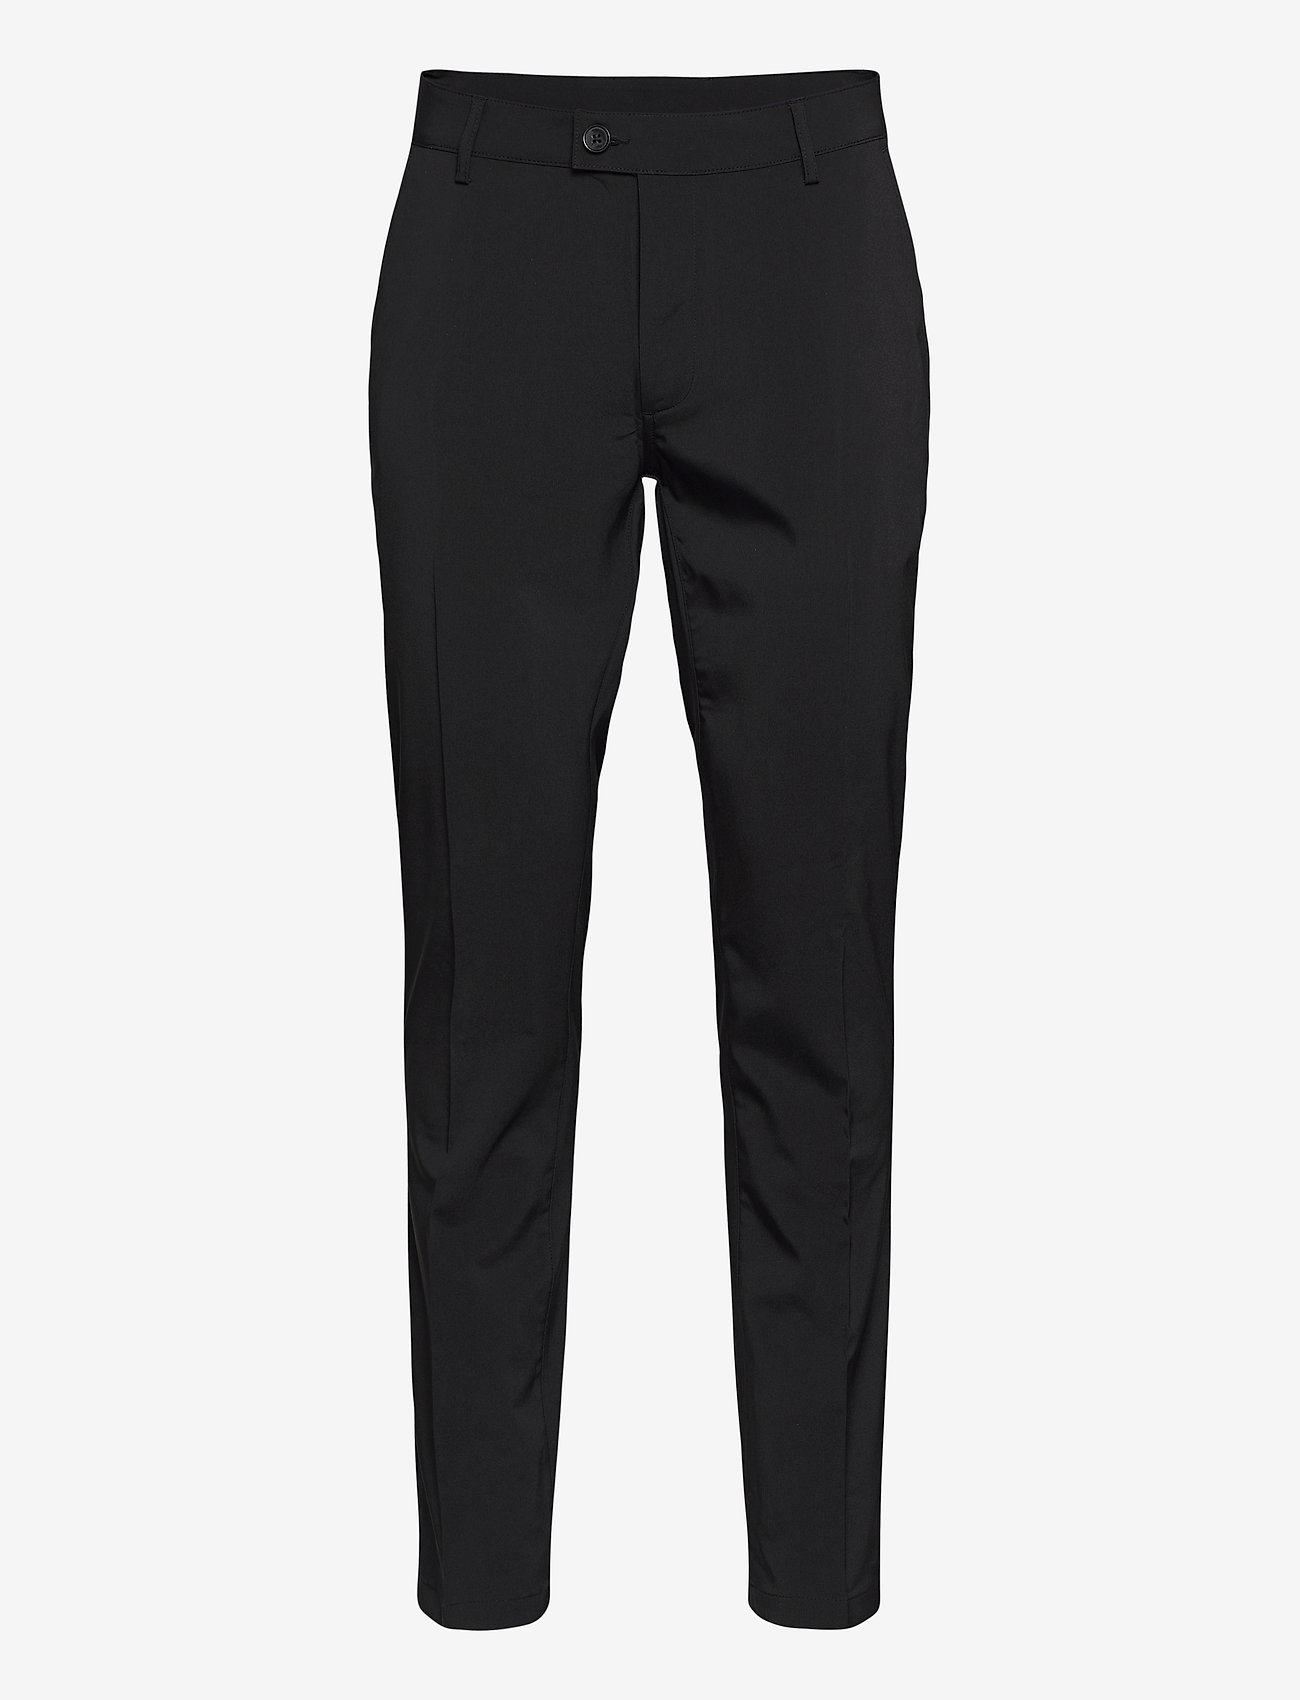 Abacus - Mens Cleek stretch trousers - golf-housut - black - 0